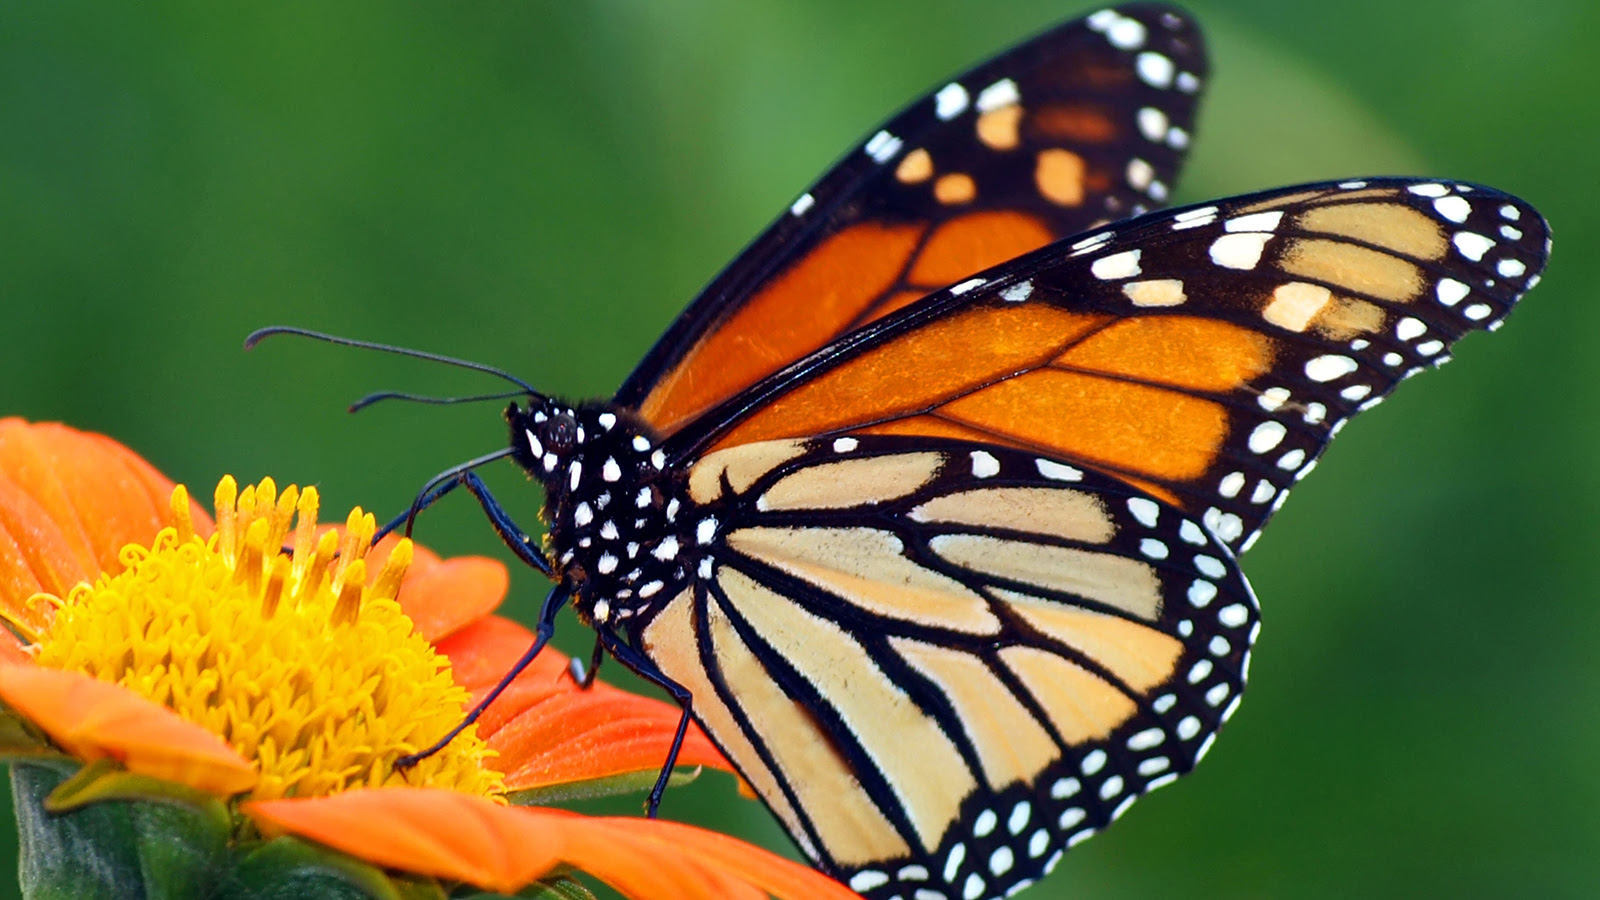 Monarch Butterflies require milkweed for laying eggs. Photo by NatGeo.